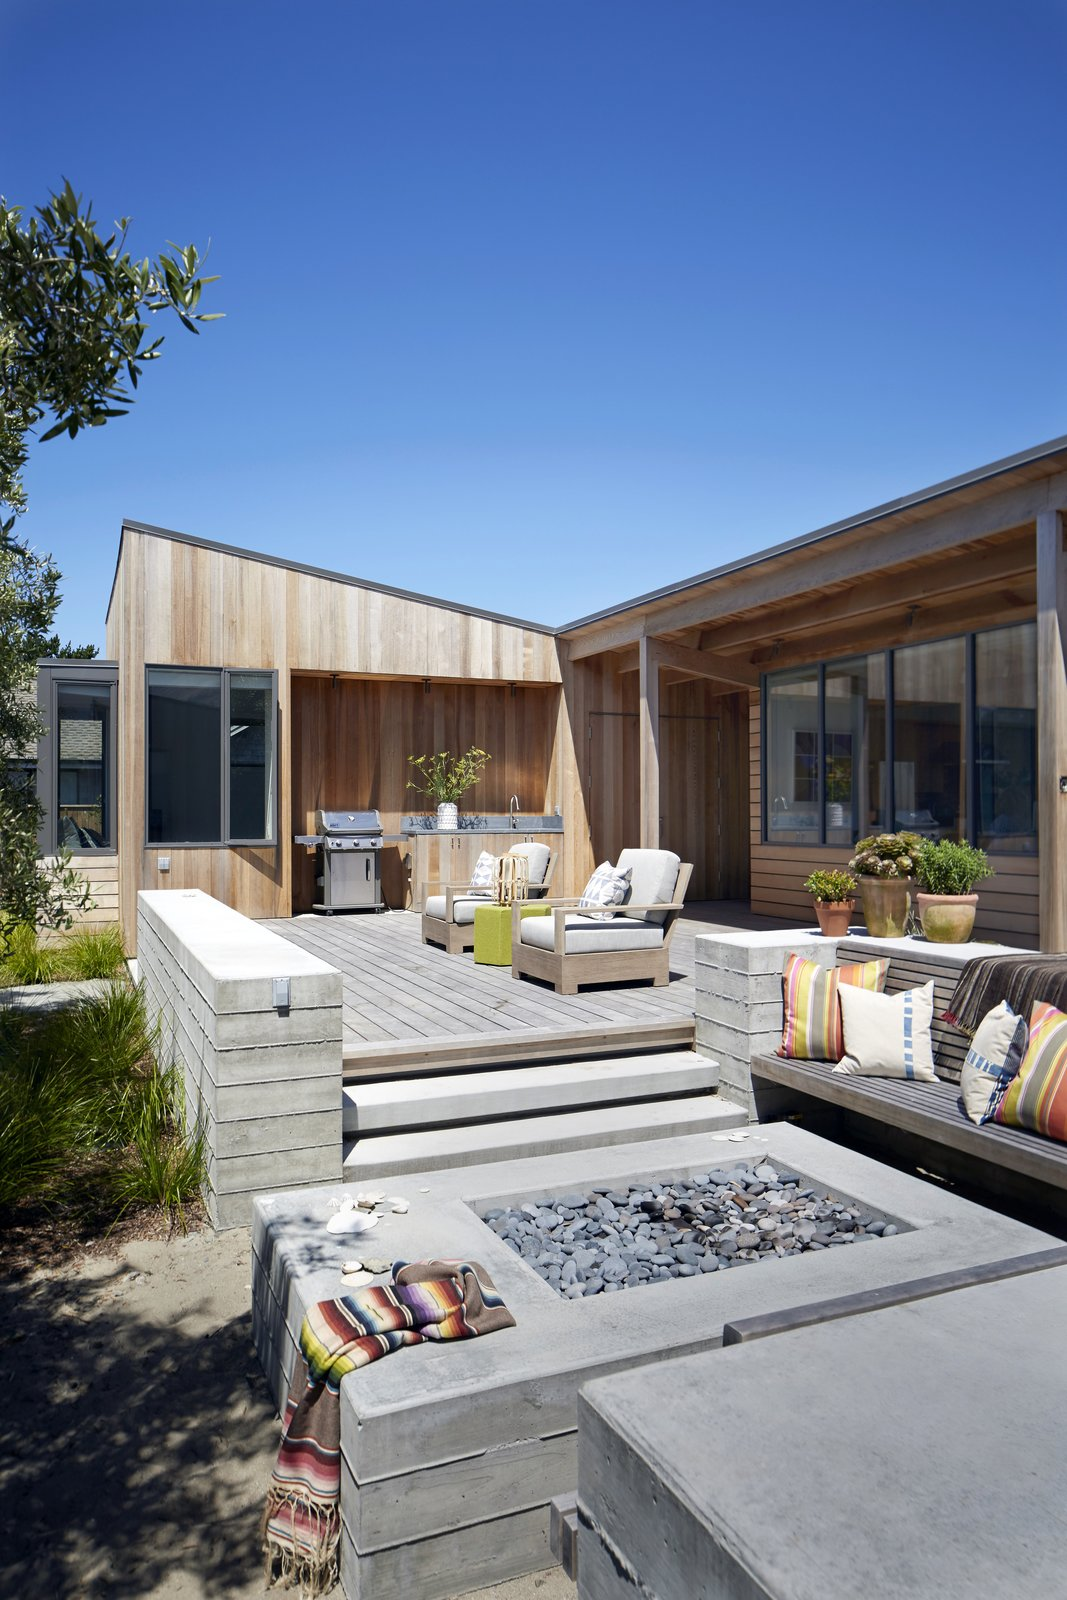 #TurnbullGriffinHaesloop #outdoor #patio #firepit #barbecue   Stinson Beach Lagoon Residence by Turnbull Griffin Haesloop Architects